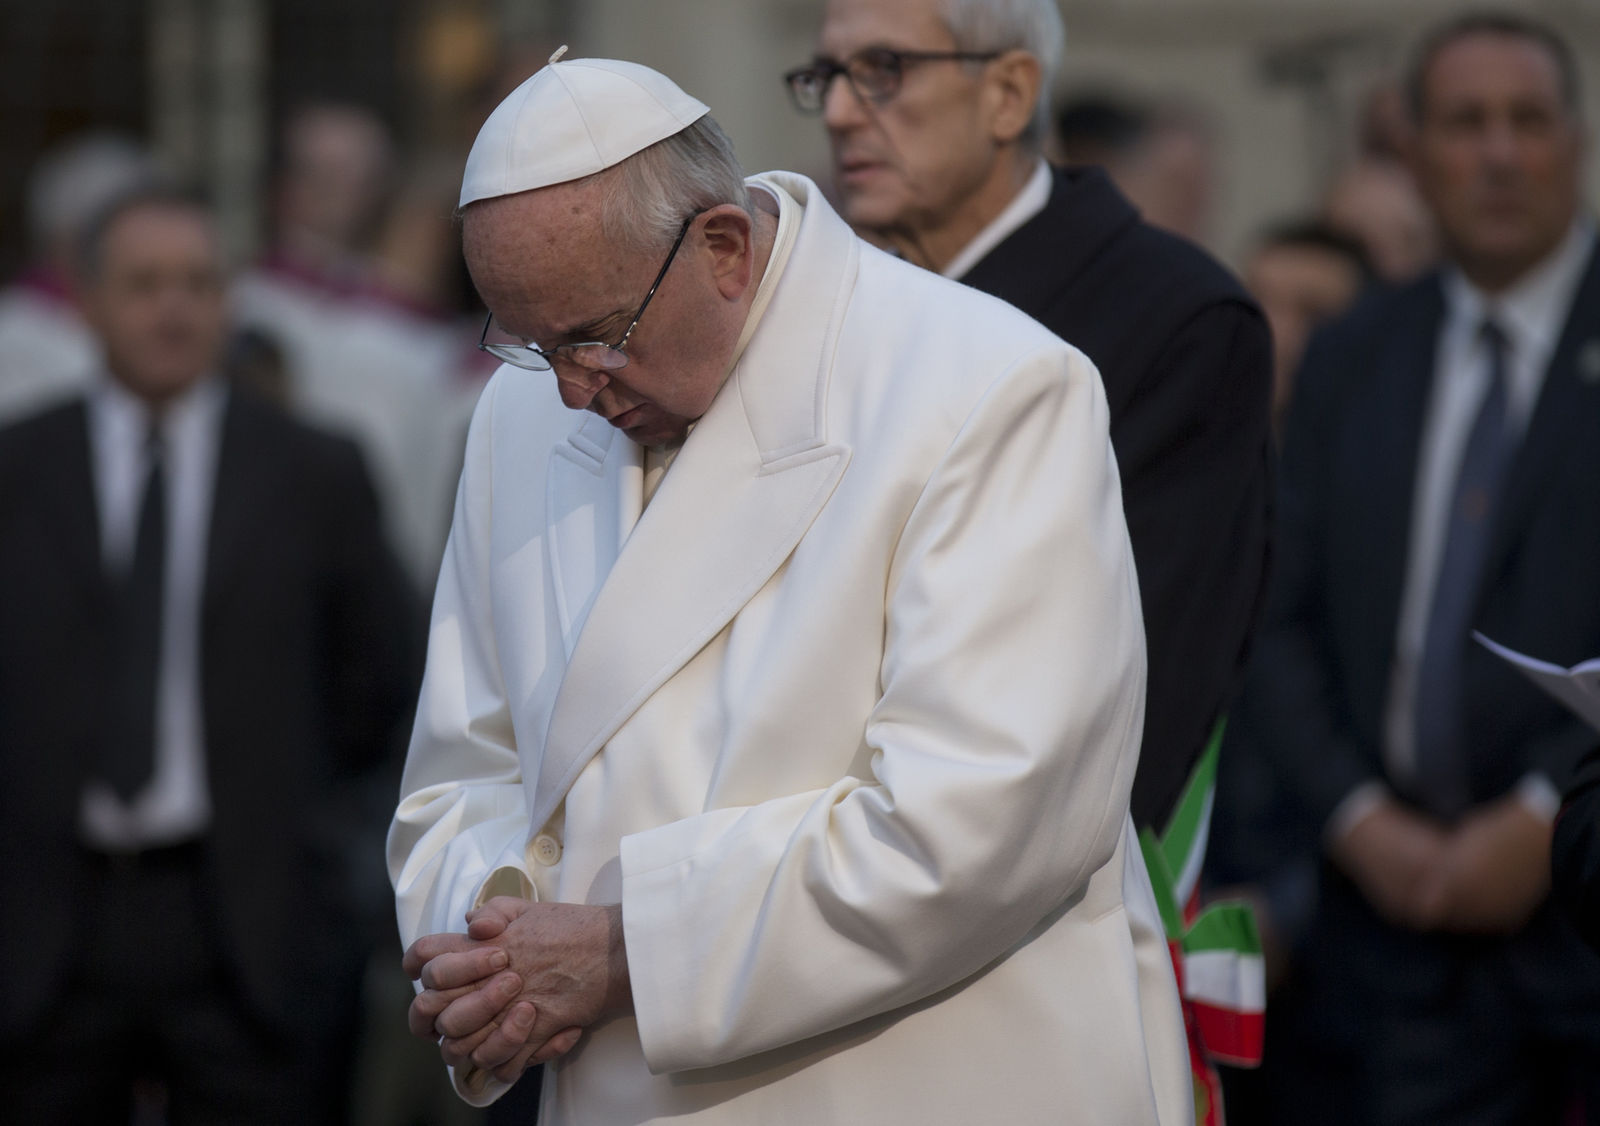 Pope Francis prays in front of the statue of the Virgin Mary, on the occasion of the Immaculate Conception's feast, in Rome, Tuesday, Dec. 8, 2015. Pope Francis opened the great bronze doors of St. Peter's Basilica on Tuesday to launch his Holy Year of Mercy, declaring that mercy trumps moralizing in his Catholic Church. (AP Photo/Alessandra Tarantino)